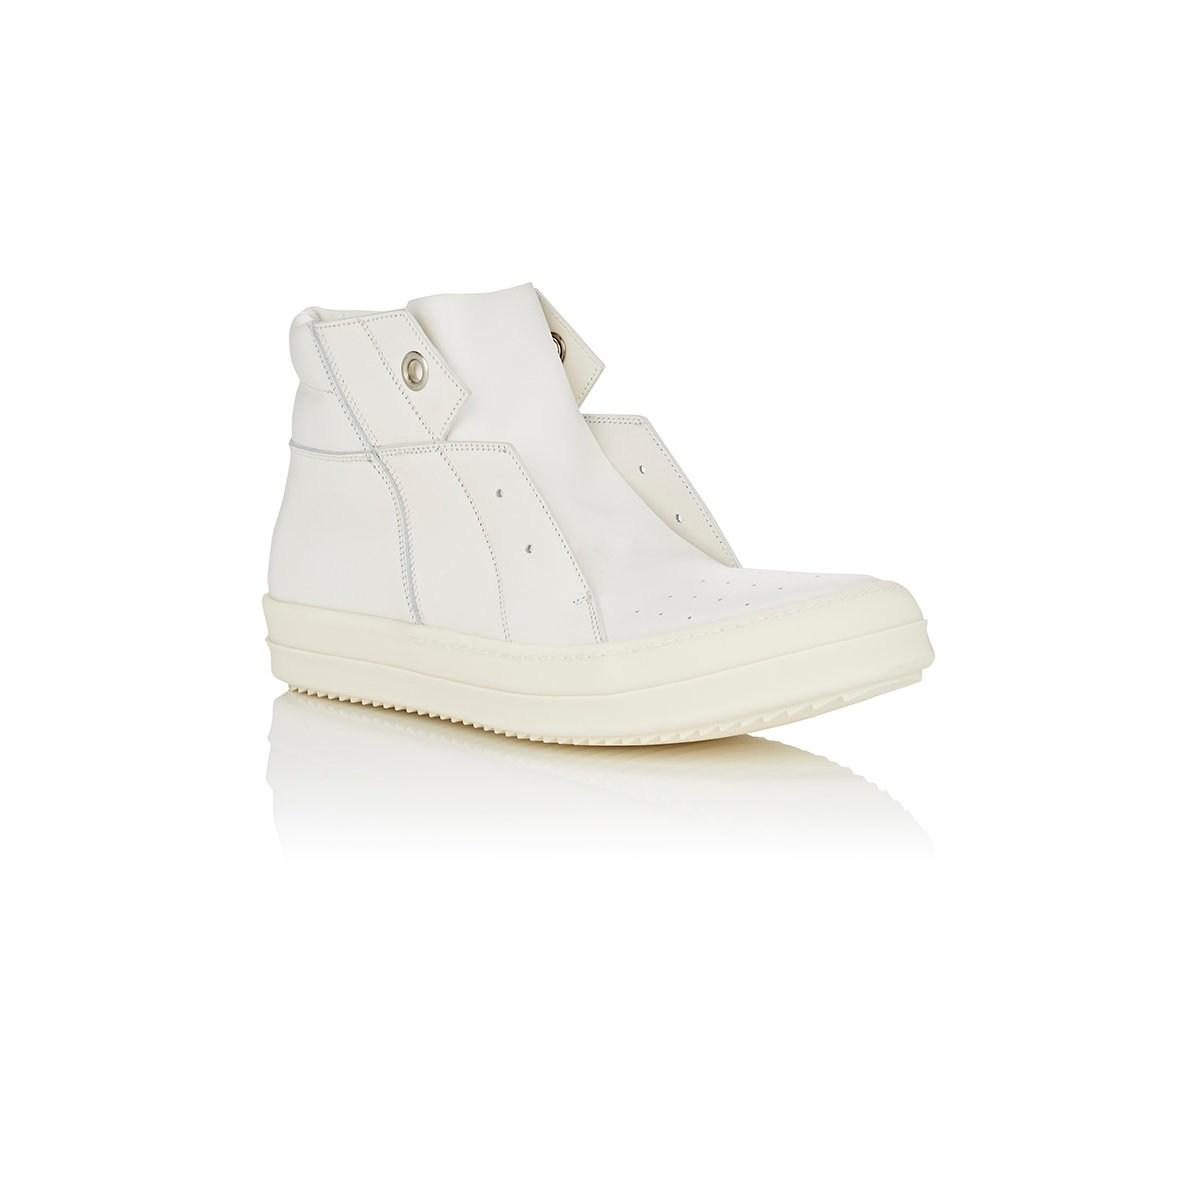 Dunk Island Australia: Rick Owens Island Dunk Leather Sneakers In White For Men